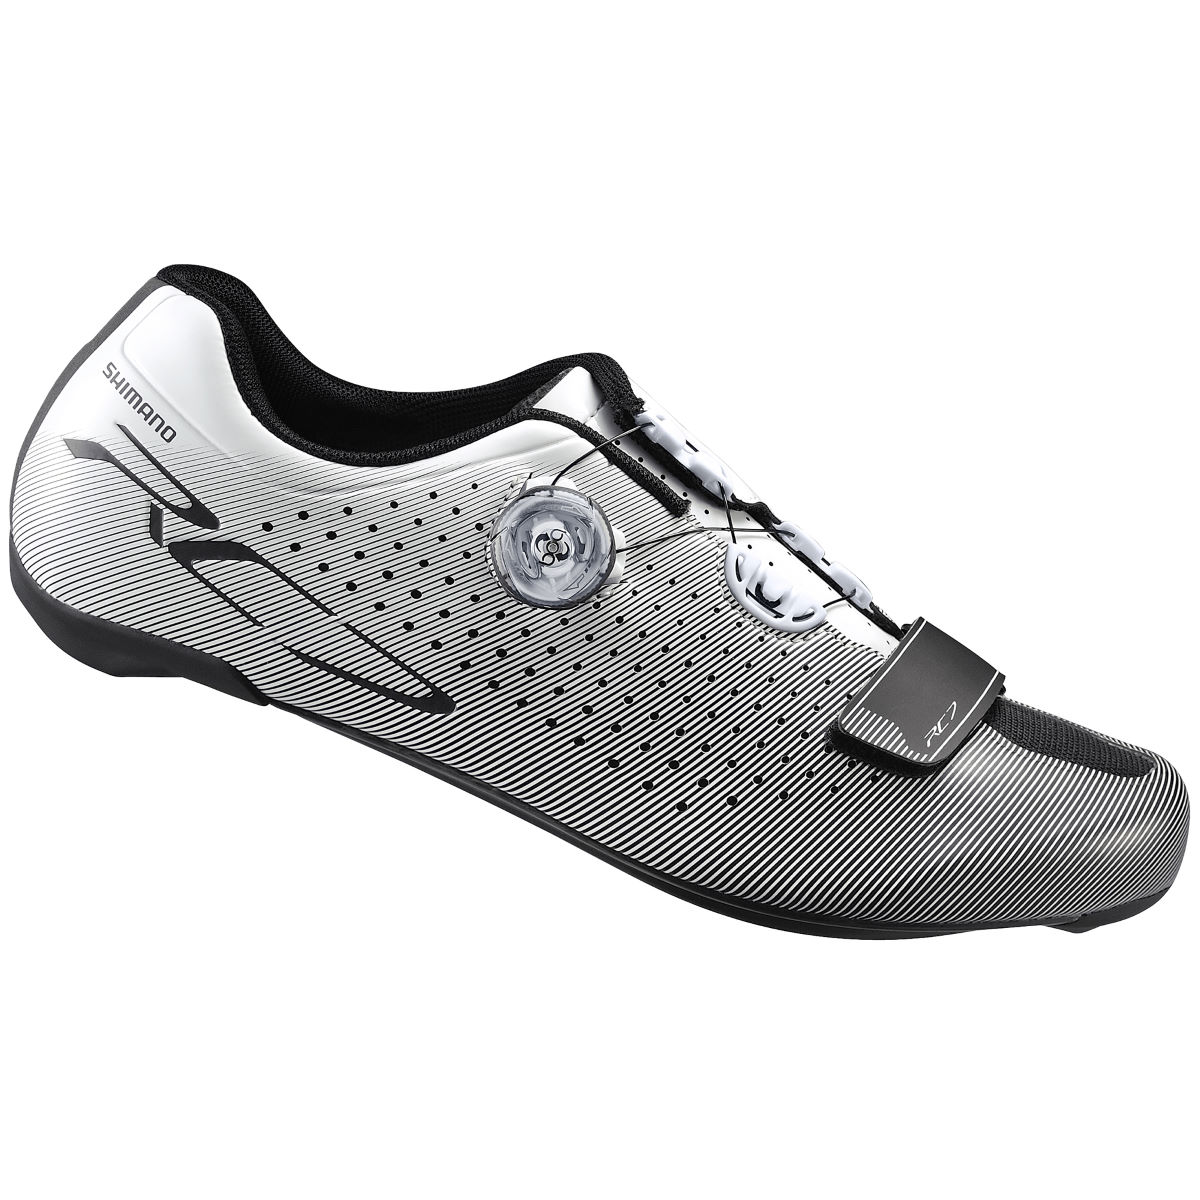 Chaussures Shimano RC7 Race (coupe large) - 49 Blanc